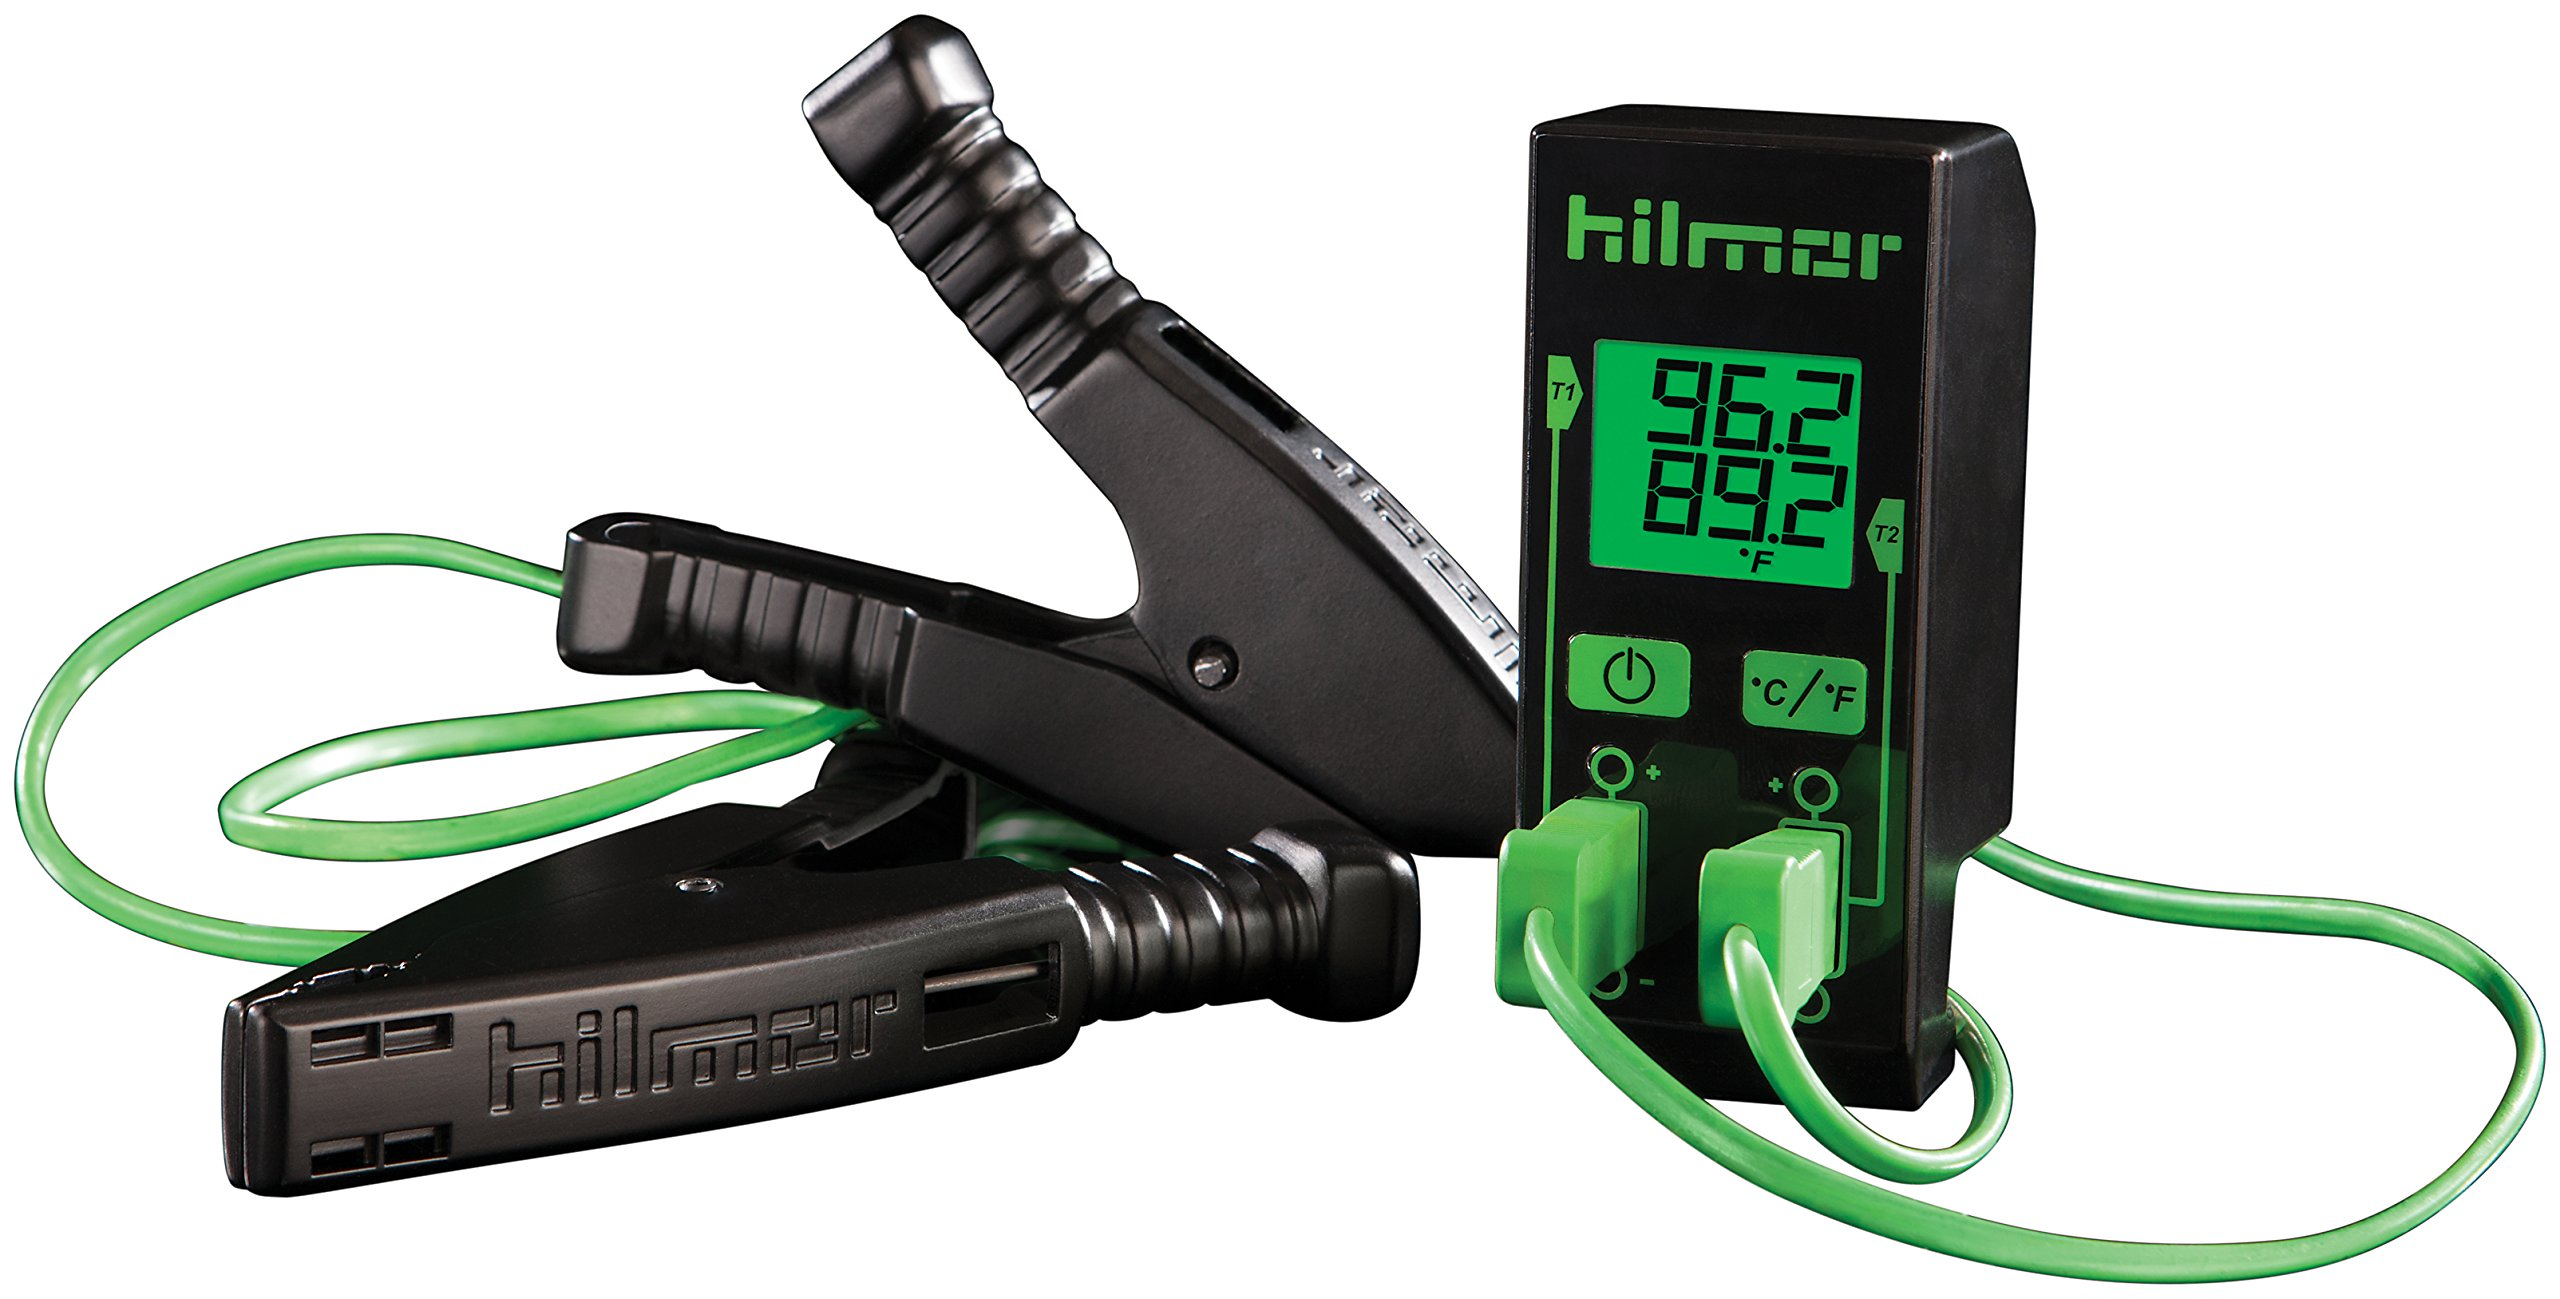 hilmor Dual Readout Thermometer, 1839106 by Hilmor